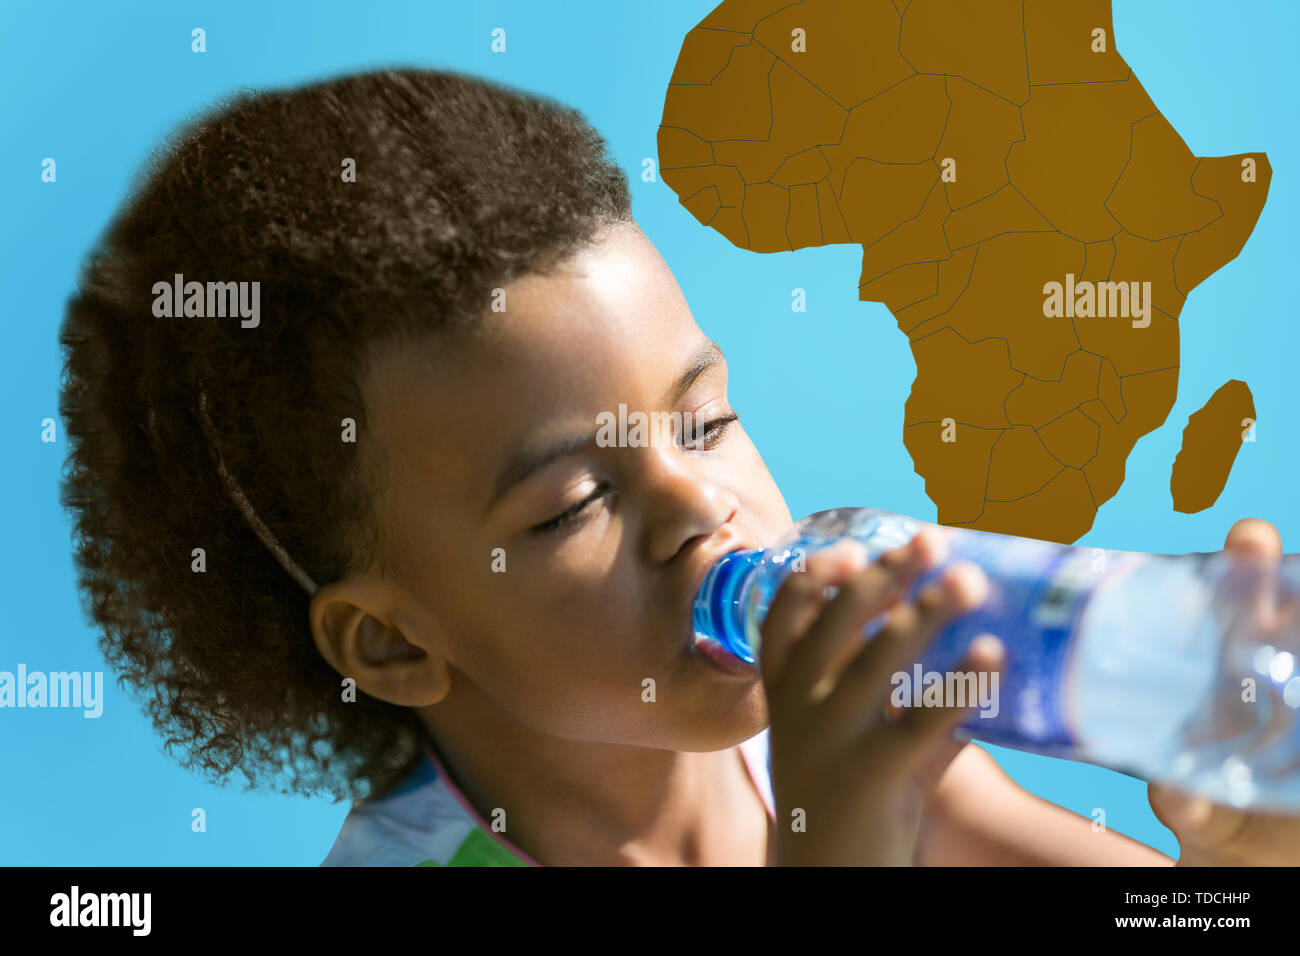 The problem with drinking water supplies on the African continent. Millions of people suffer from thirst in developing countries. - Stock Image